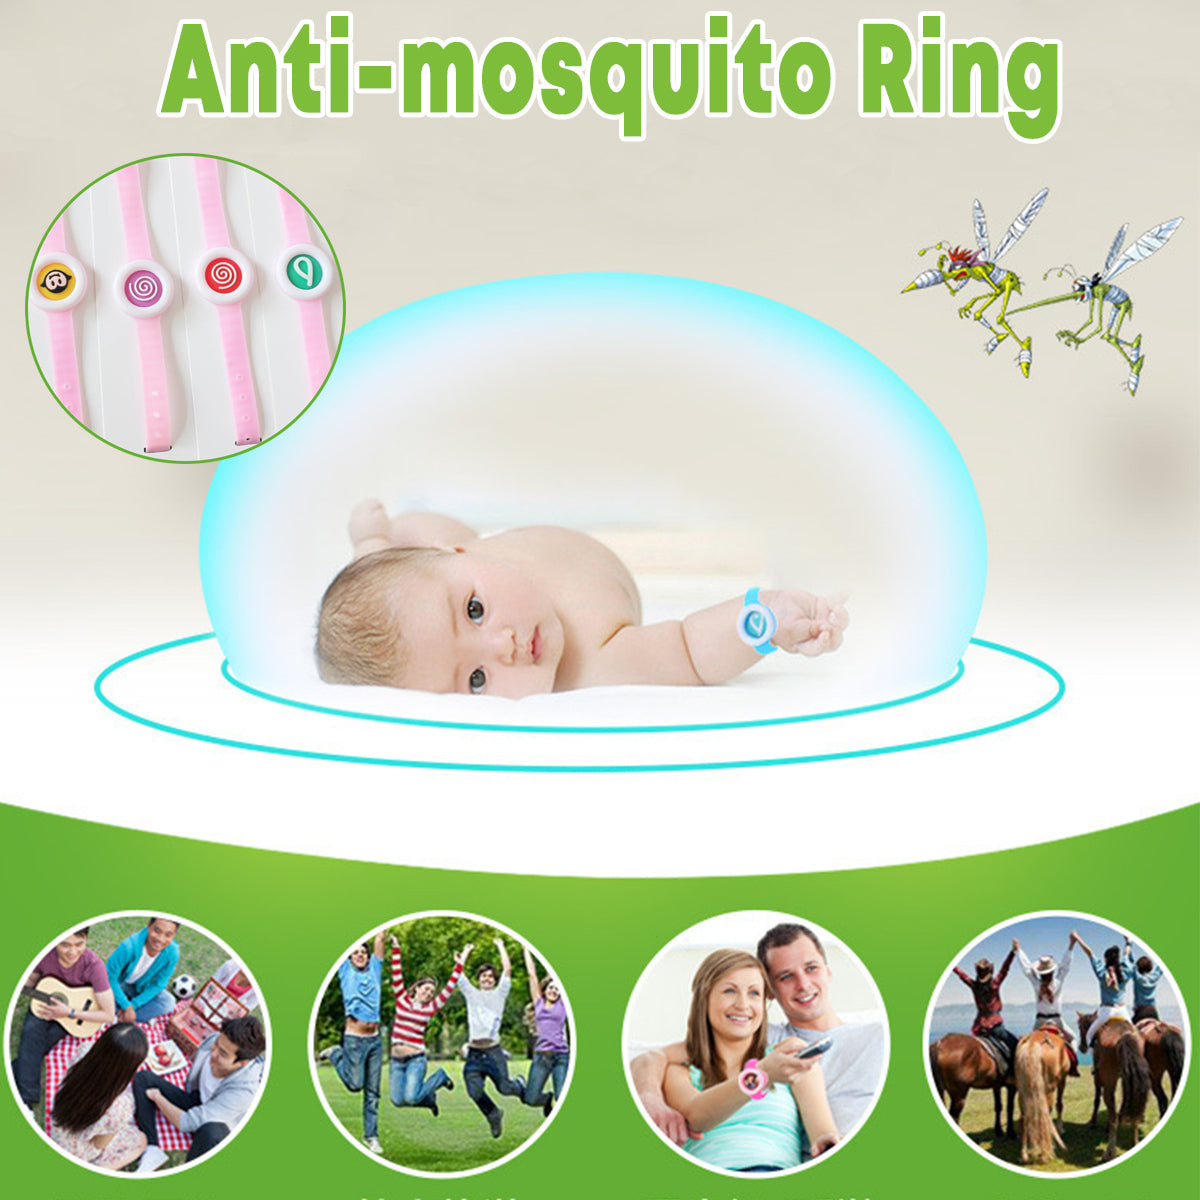 cozyrex,Anti-mosquito Hand Watch Ring Repellent Bracelets Cartoon Wr,CozyRex,